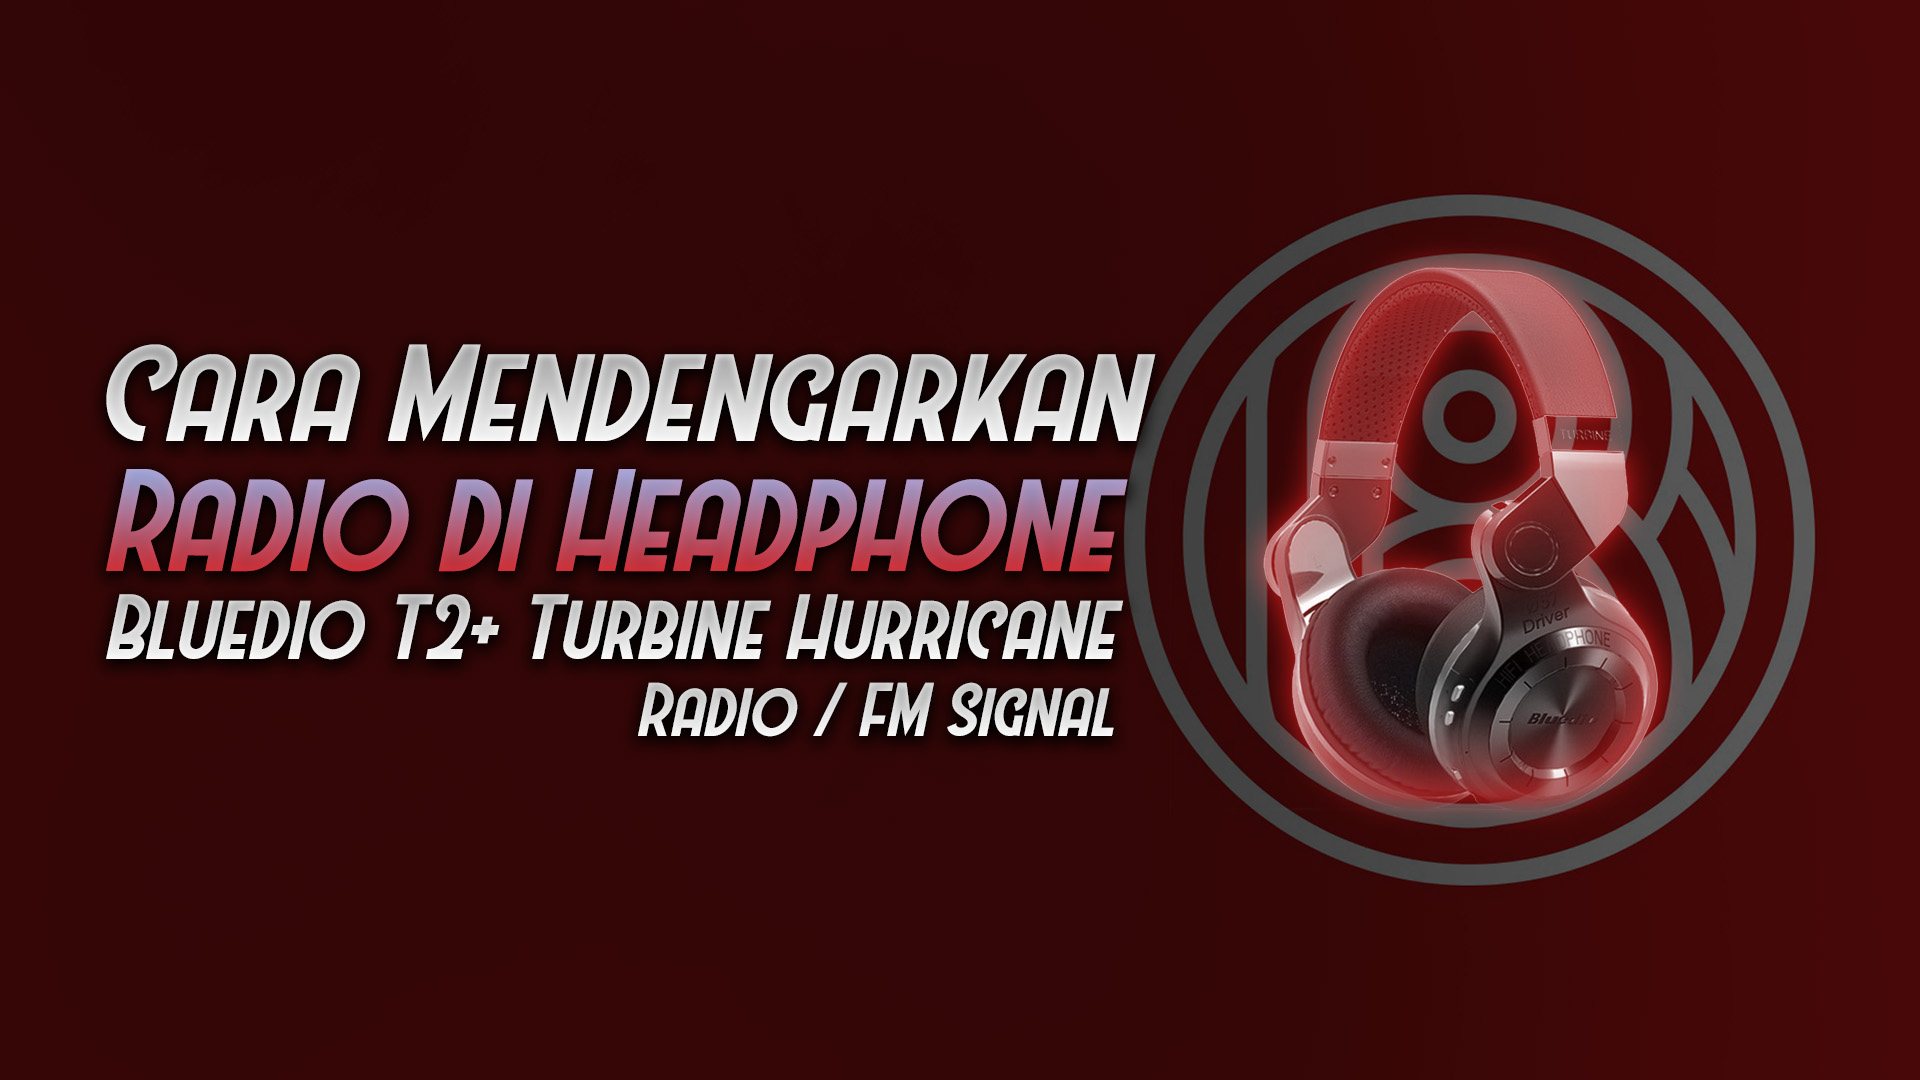 cara mendengarkan radio headphone bluedio t2+ turbine hurricane - rio bermano